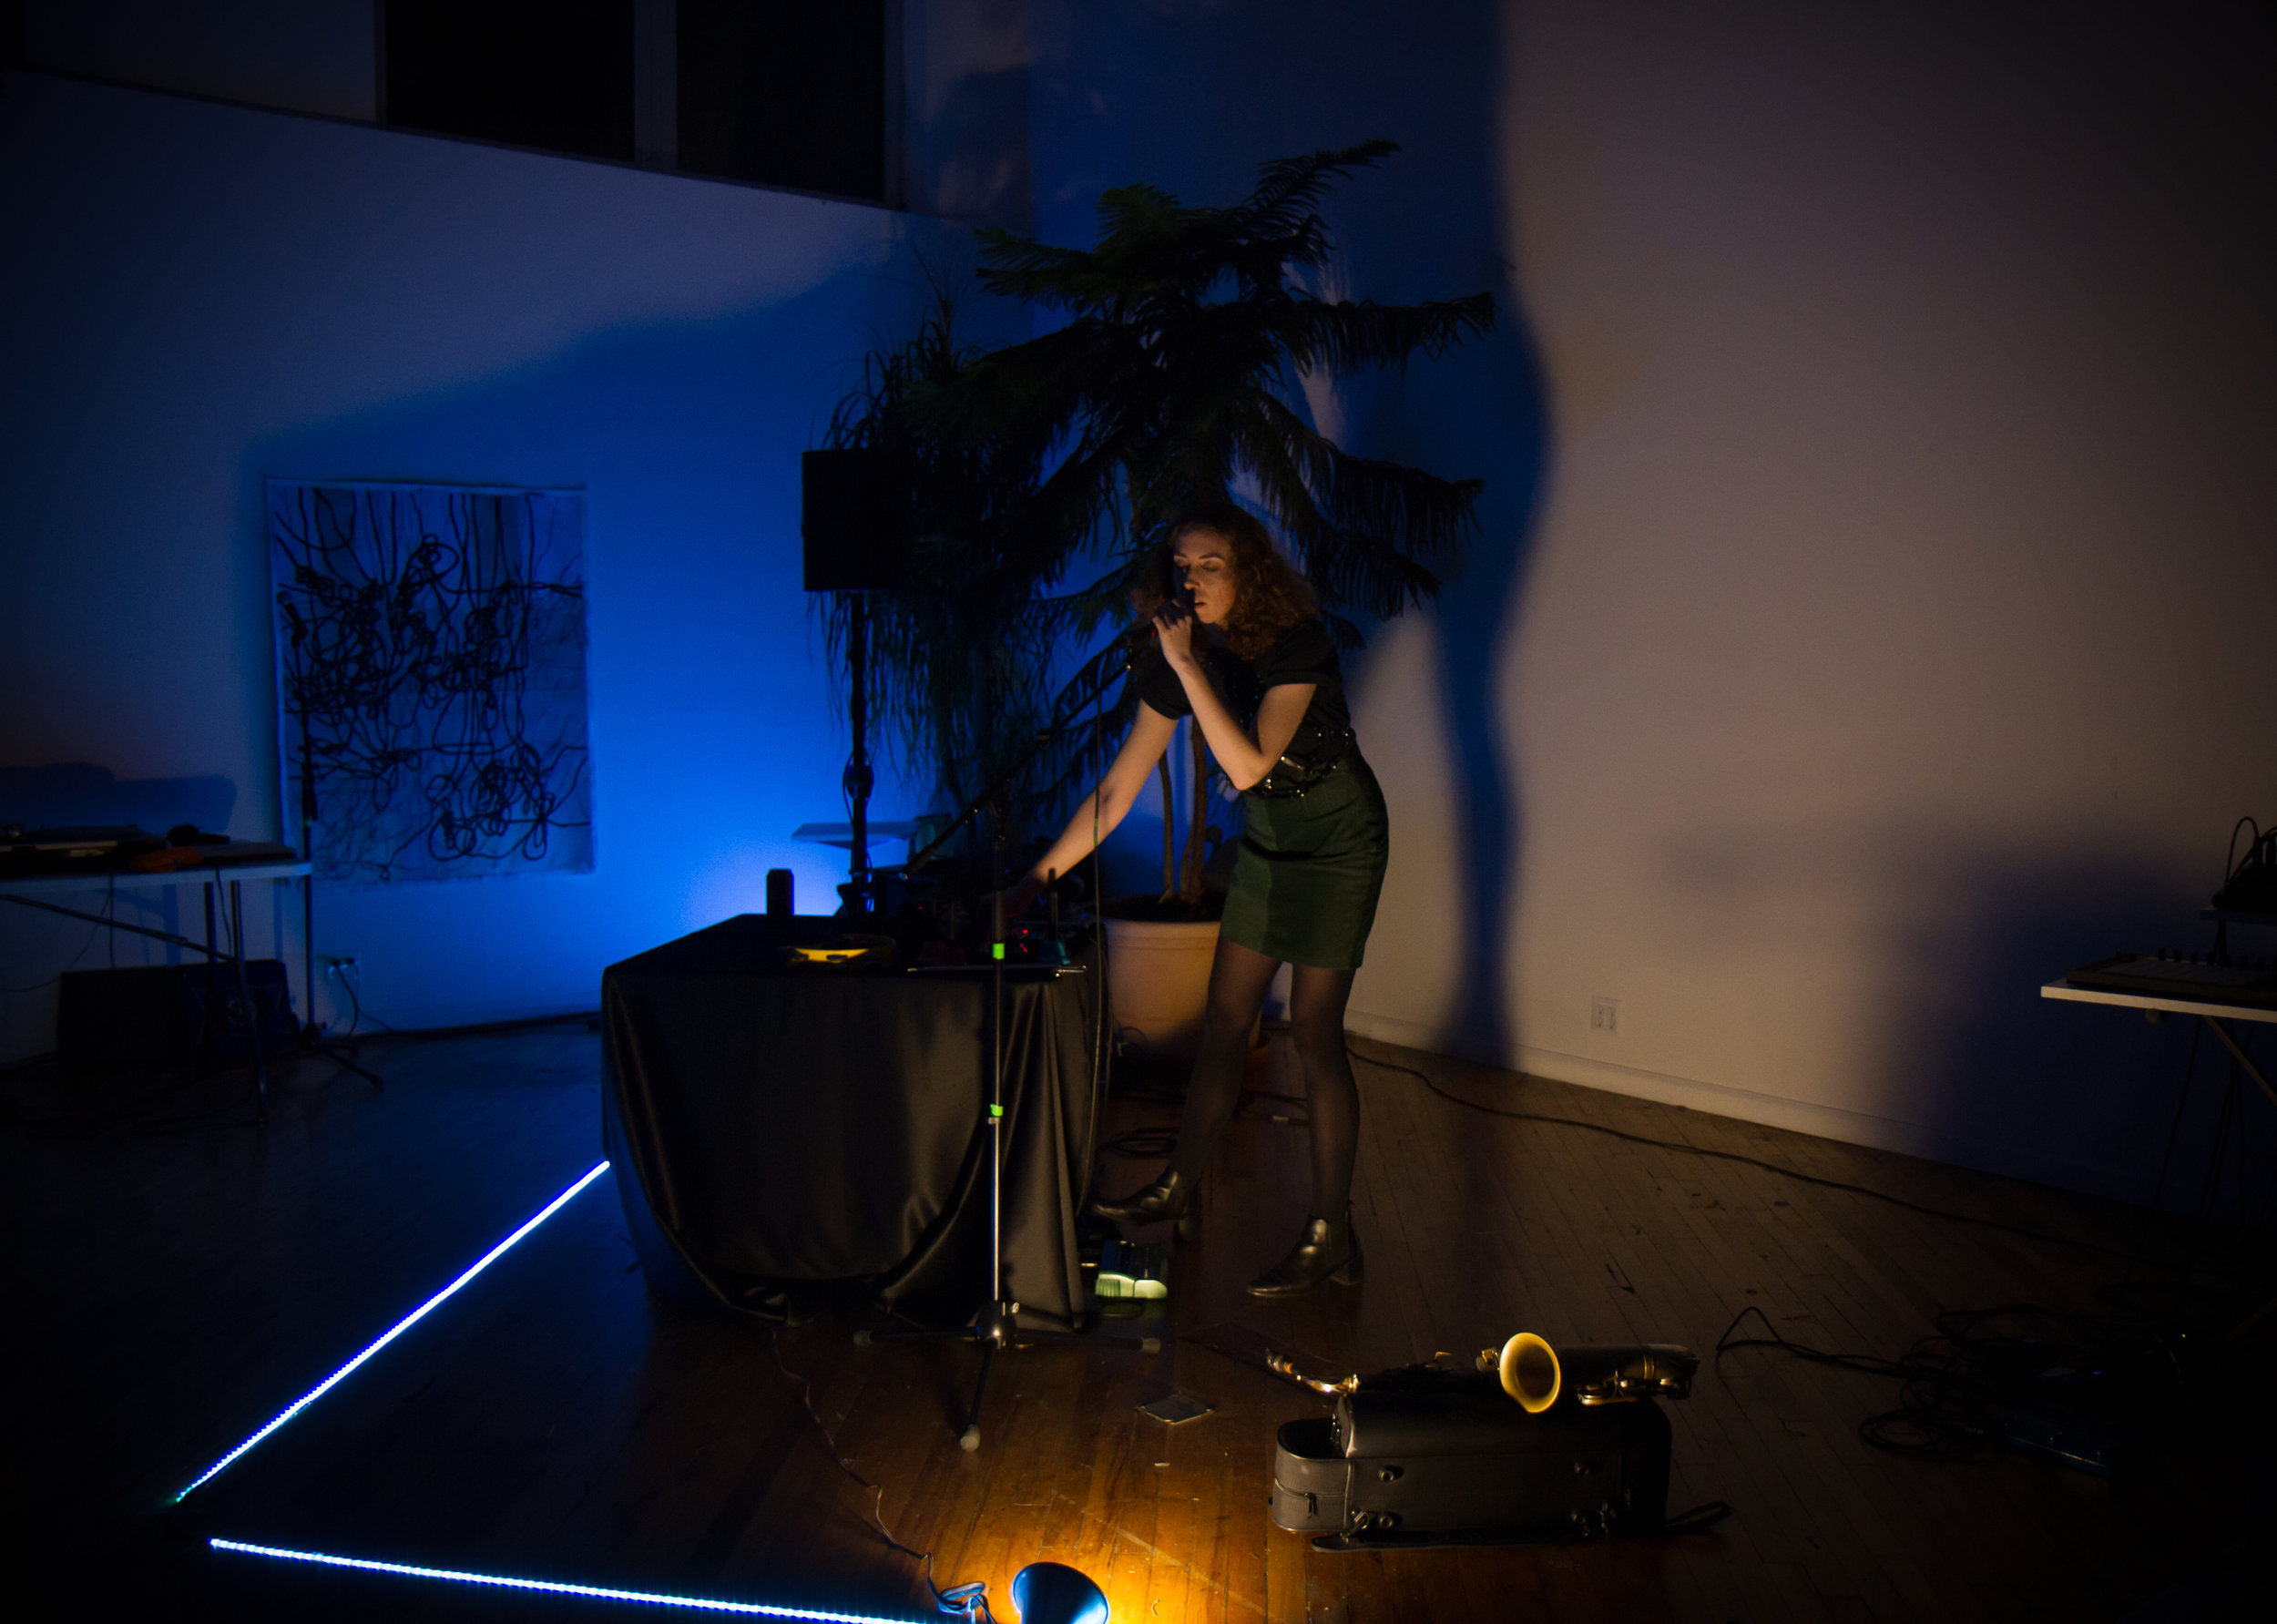 Eve Essex at Outpost Artist Resources, March 10, 2018. Photo by Wolfgang Daniel.